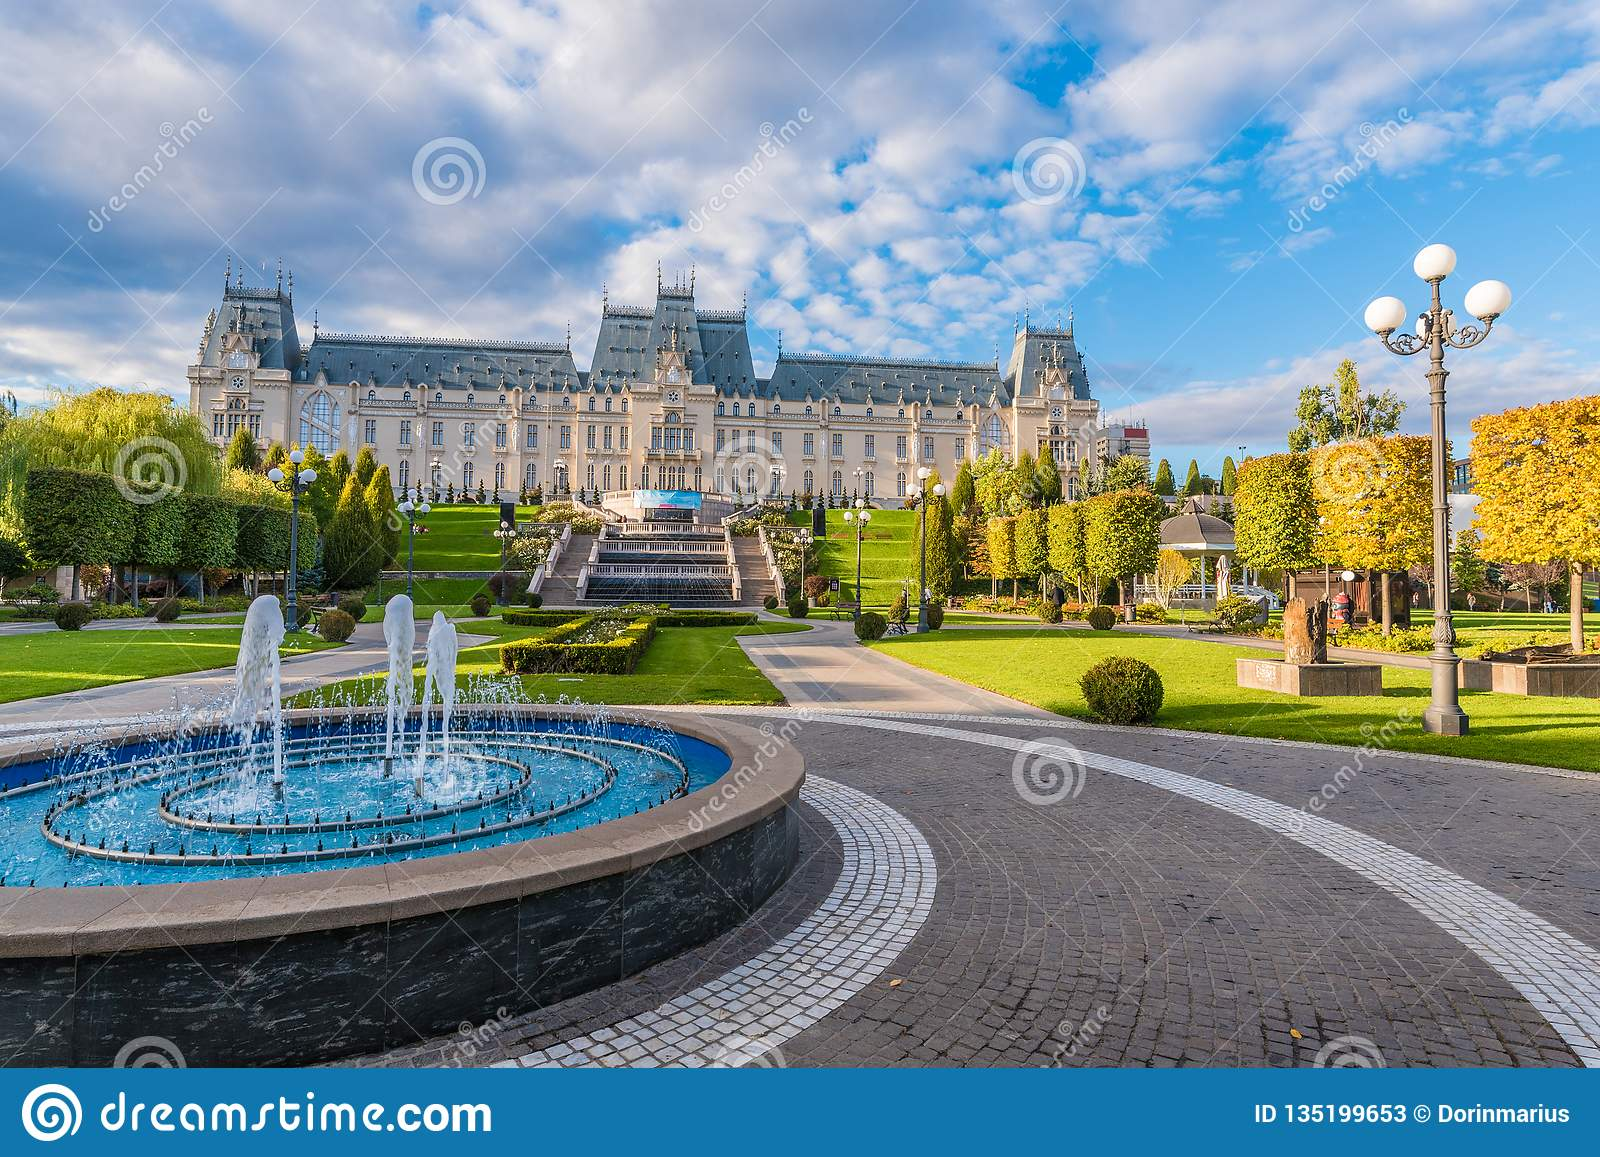 Panoramic view of Cultural Palace and central square in Iasi city, Moldavia Romania